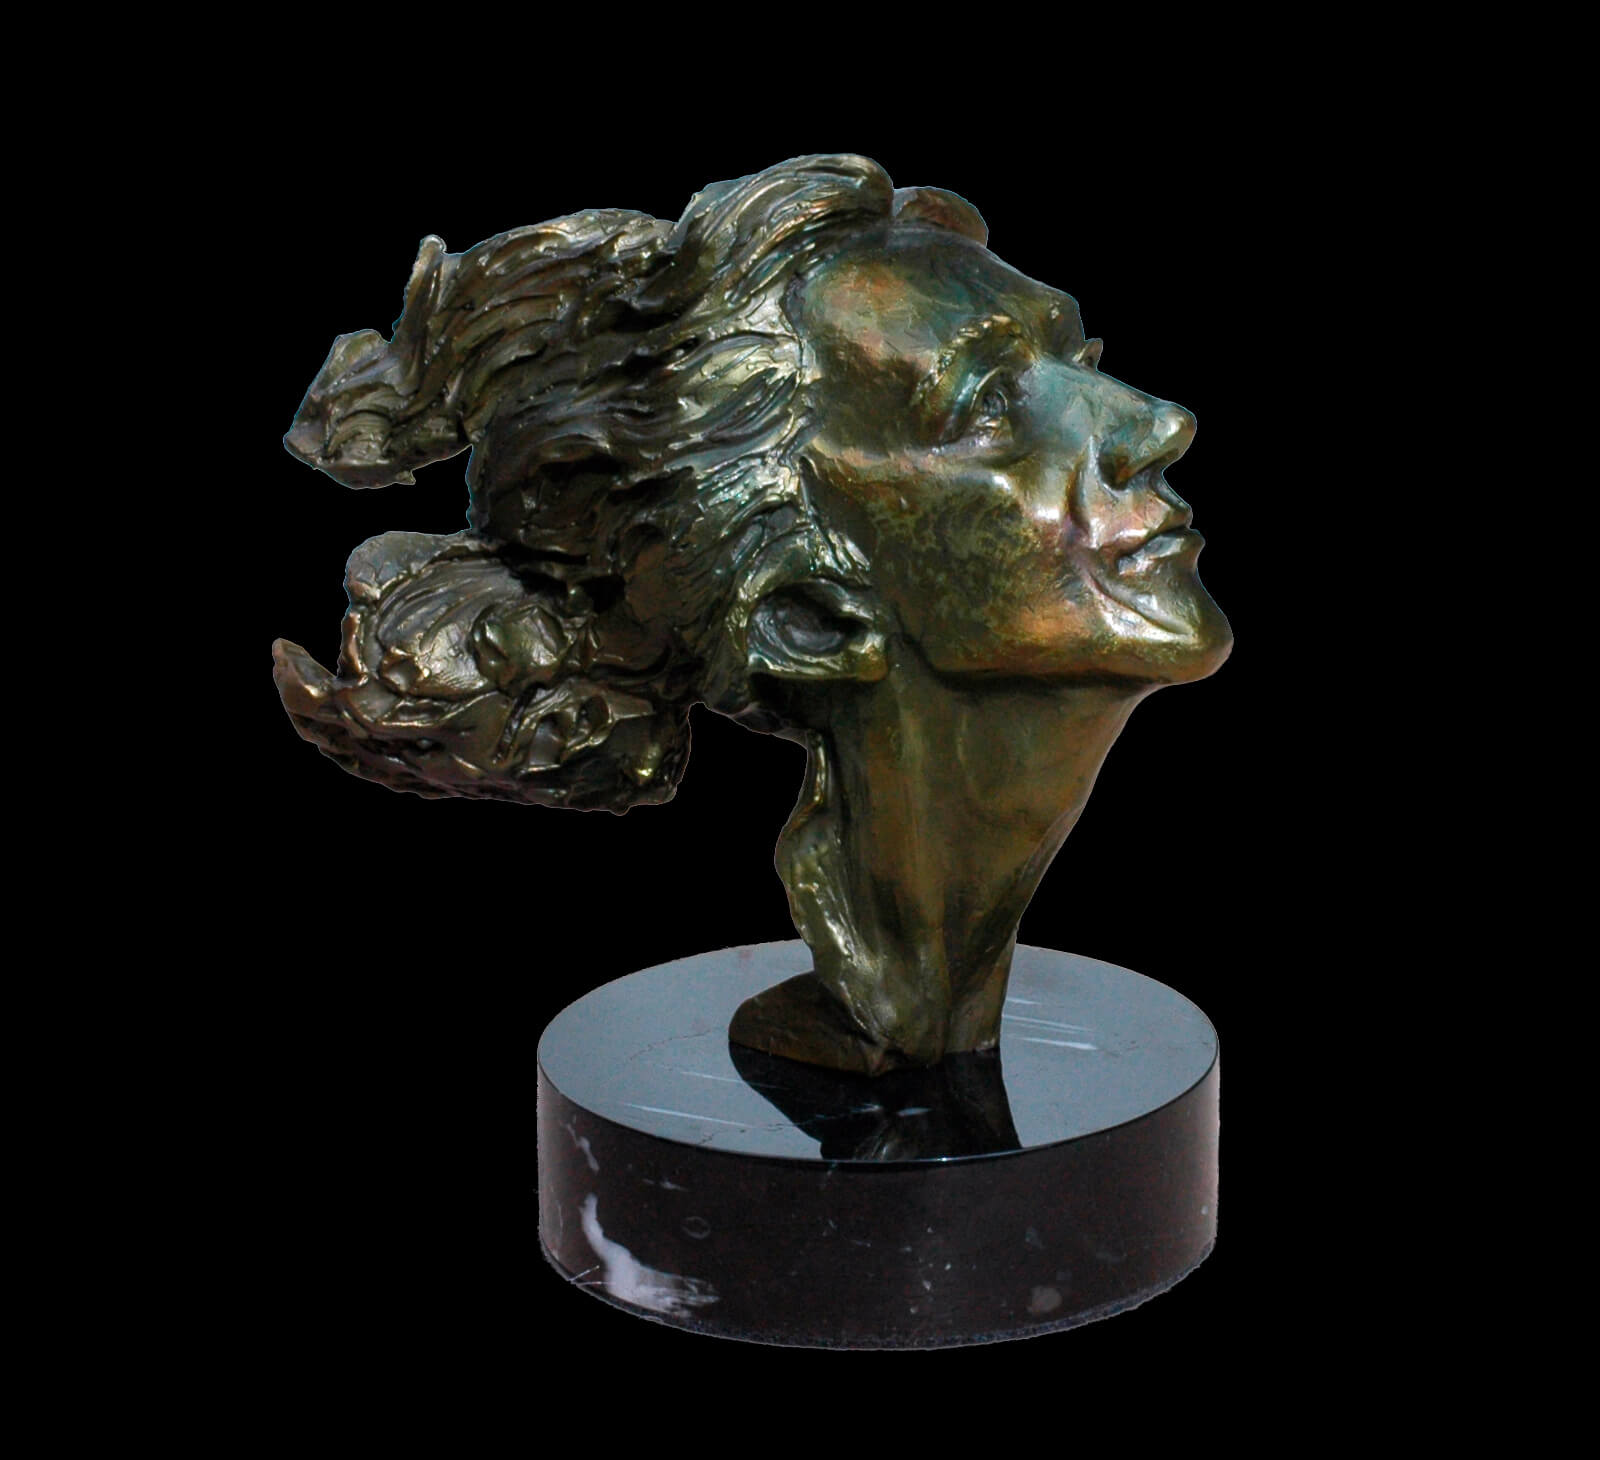 Golden Boy a small figurative sculpture by Andrew DeVries